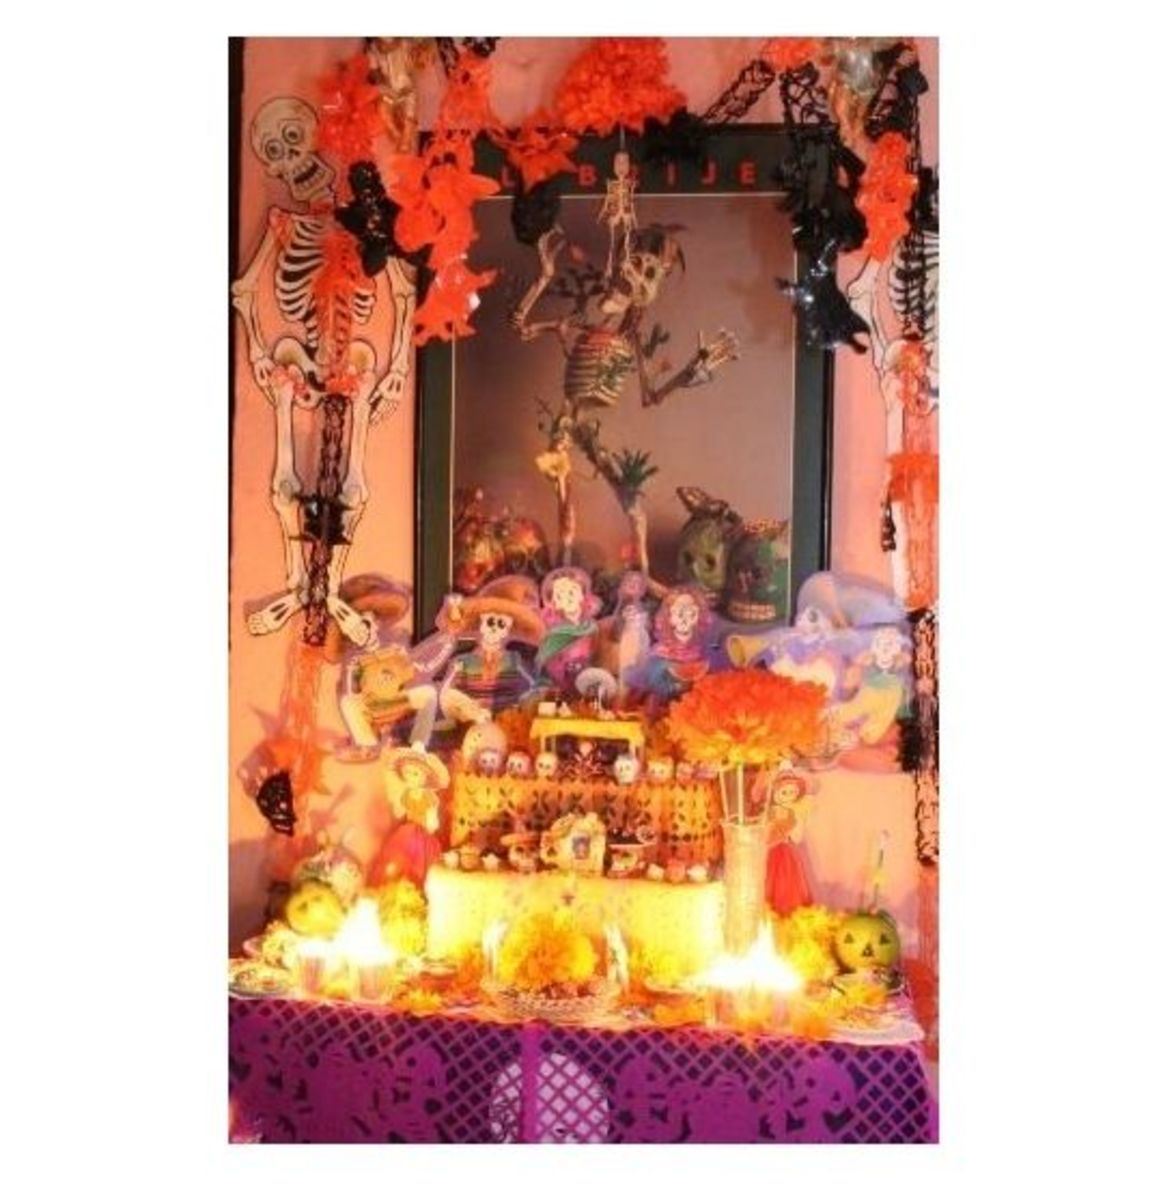 Day of the Dead shrine photo, public domain by ardelfin, morguefile.com